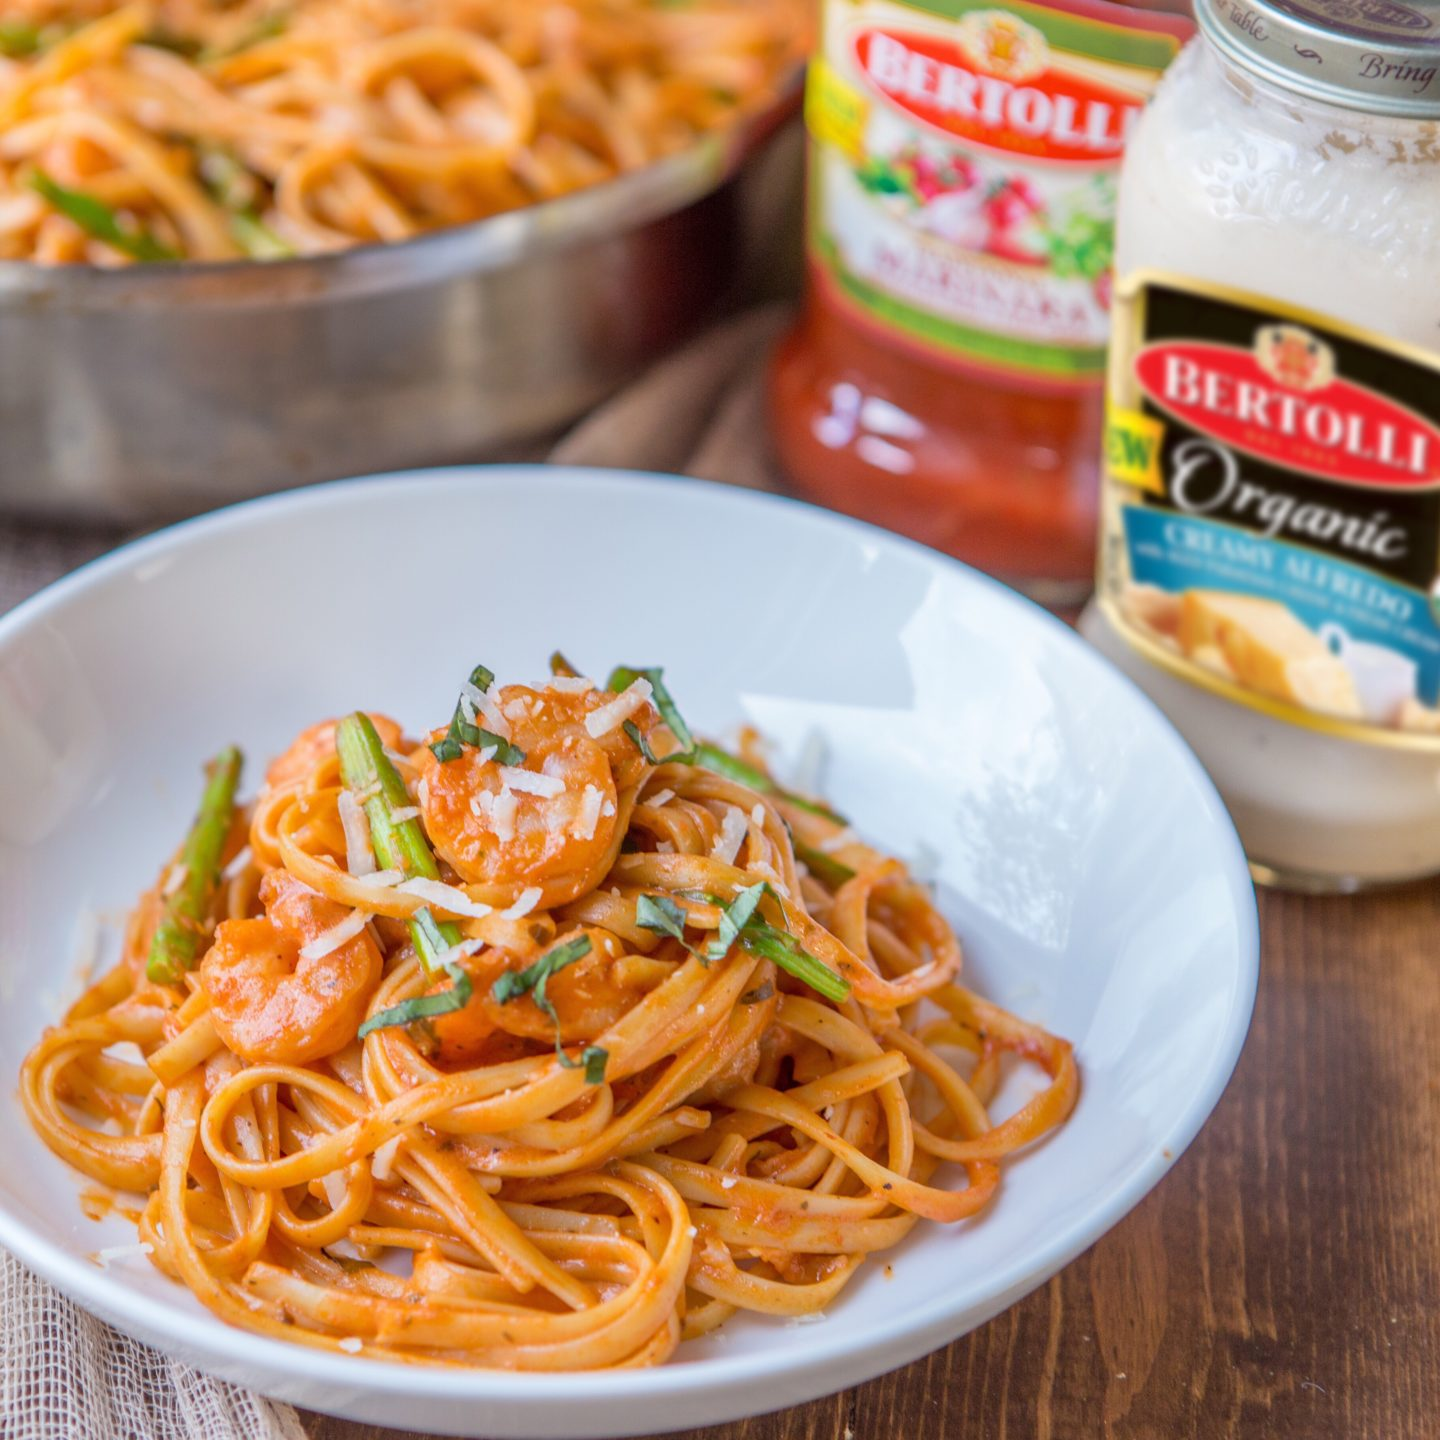 Ideal Asparagus Pasta Bertolli Shrimp Asparagus Pasta Pesto Shrimp Asparagus Pasta Dish Sauces Get Your Family Hooked On Shrimp Asparagus Pasta Get Your Family Hooked On Shrimp nice food Shrimp Asparagus Pasta